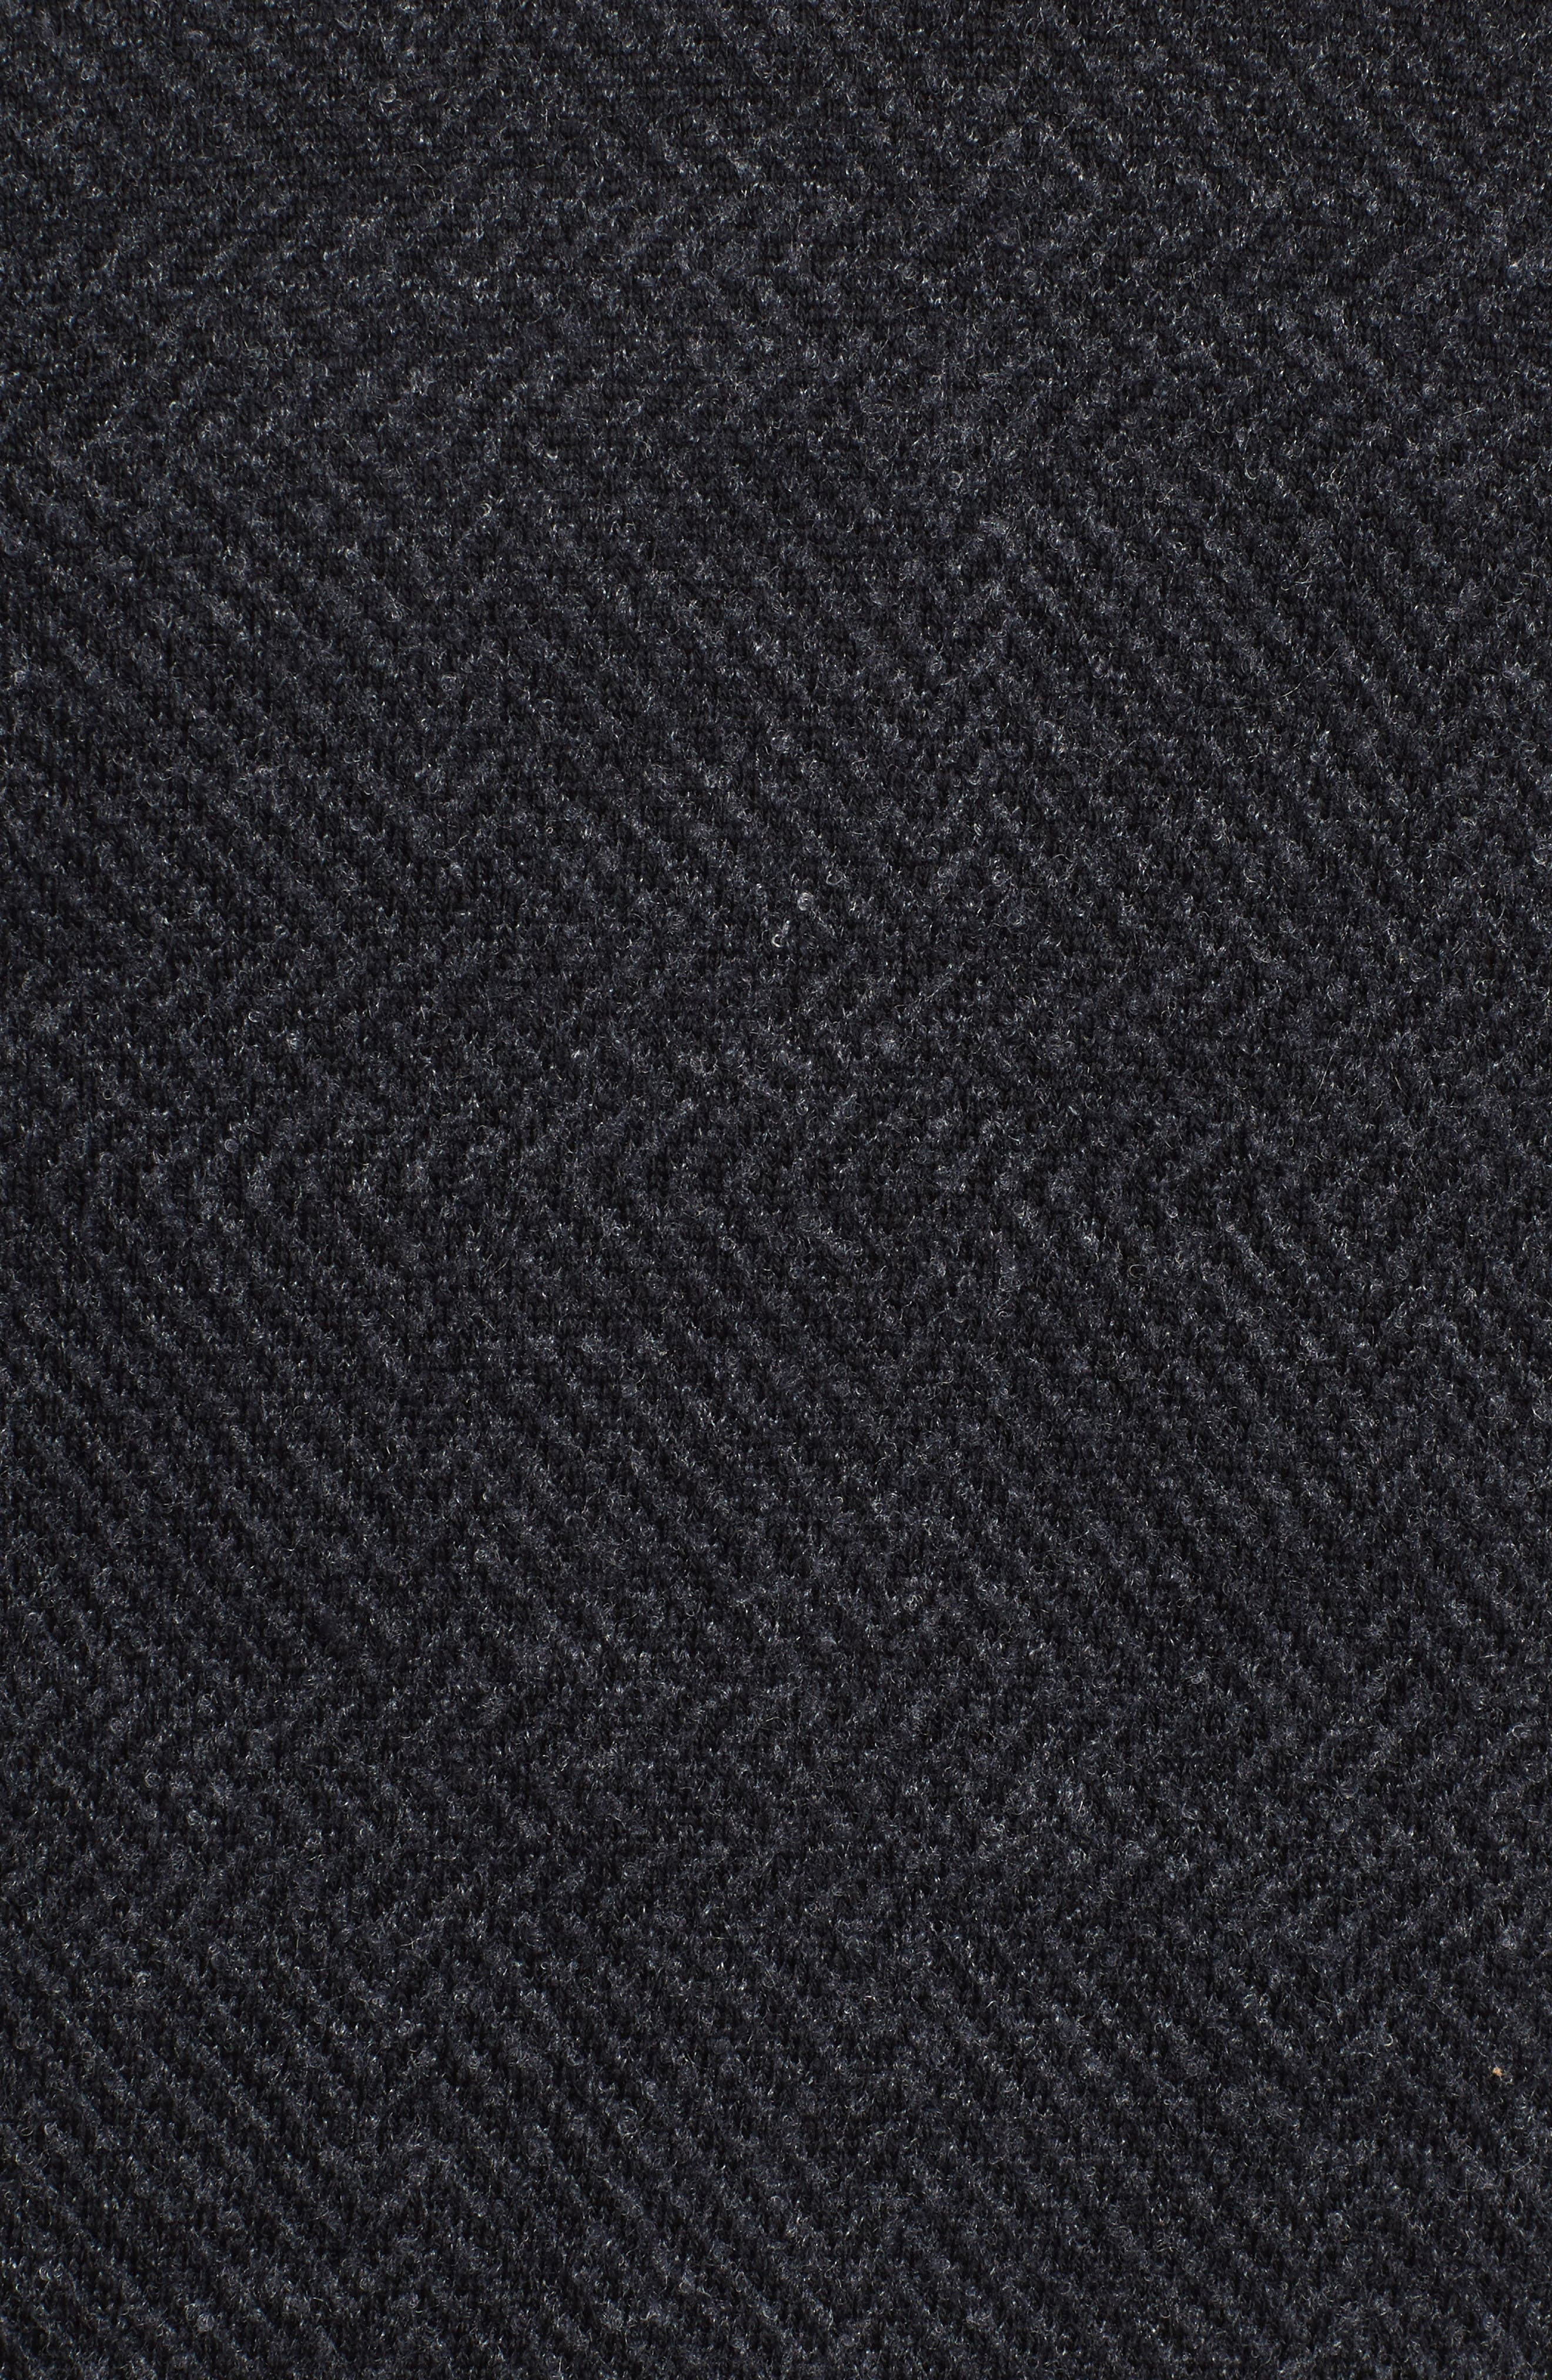 Notto Wool Blend Sweater,                             Alternate thumbnail 6, color,                             Black